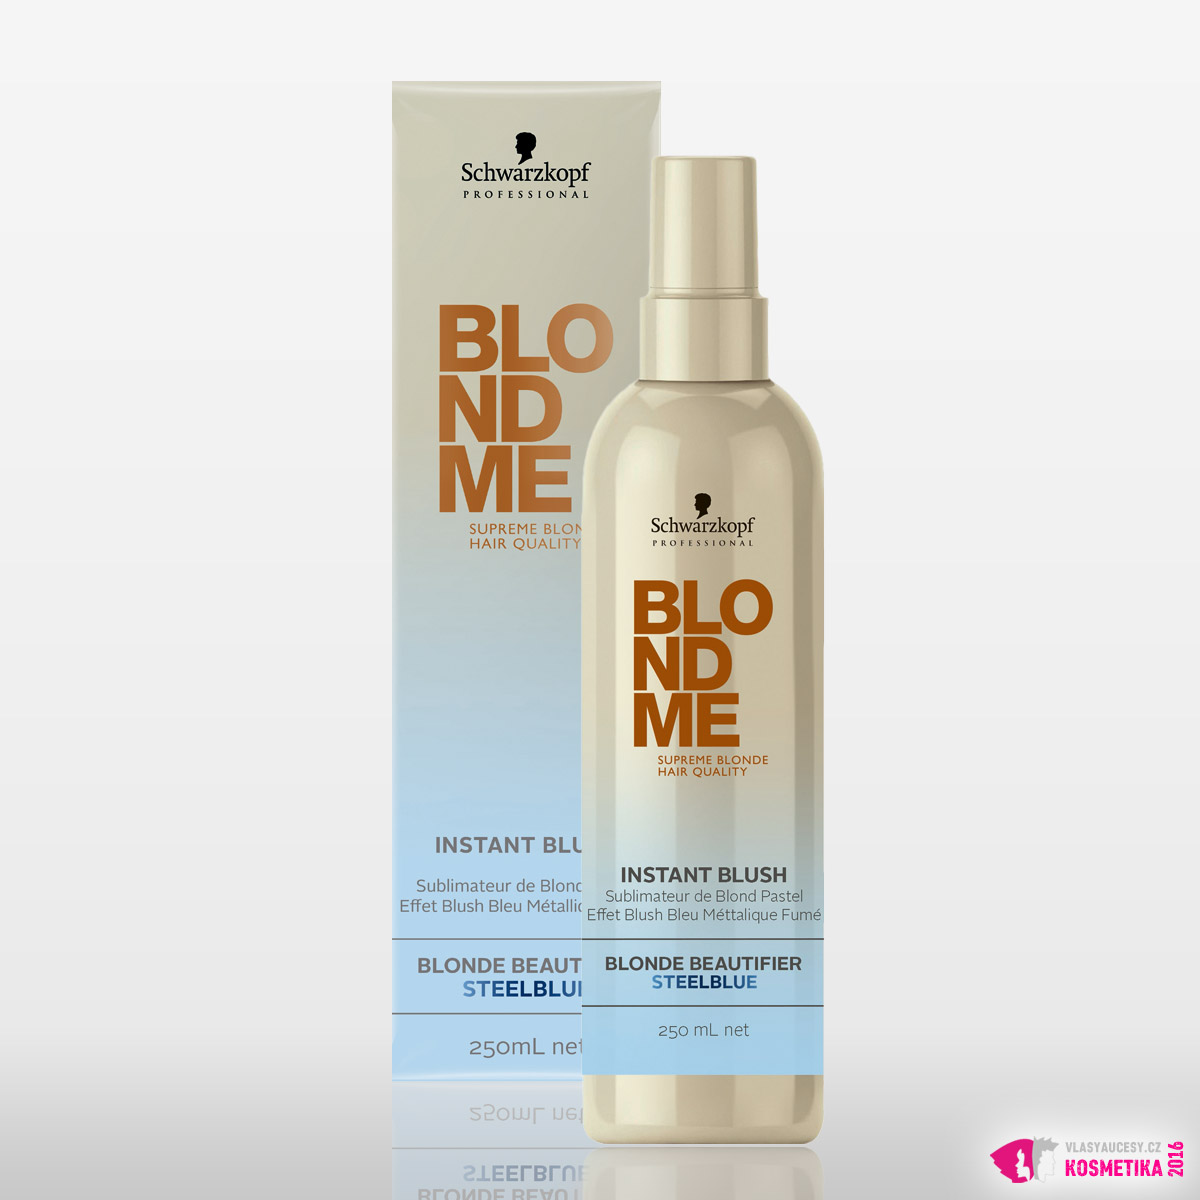 BlondMe Instant Blush - Blonde Beautifier Steelblue od Schwarzkopf Professional